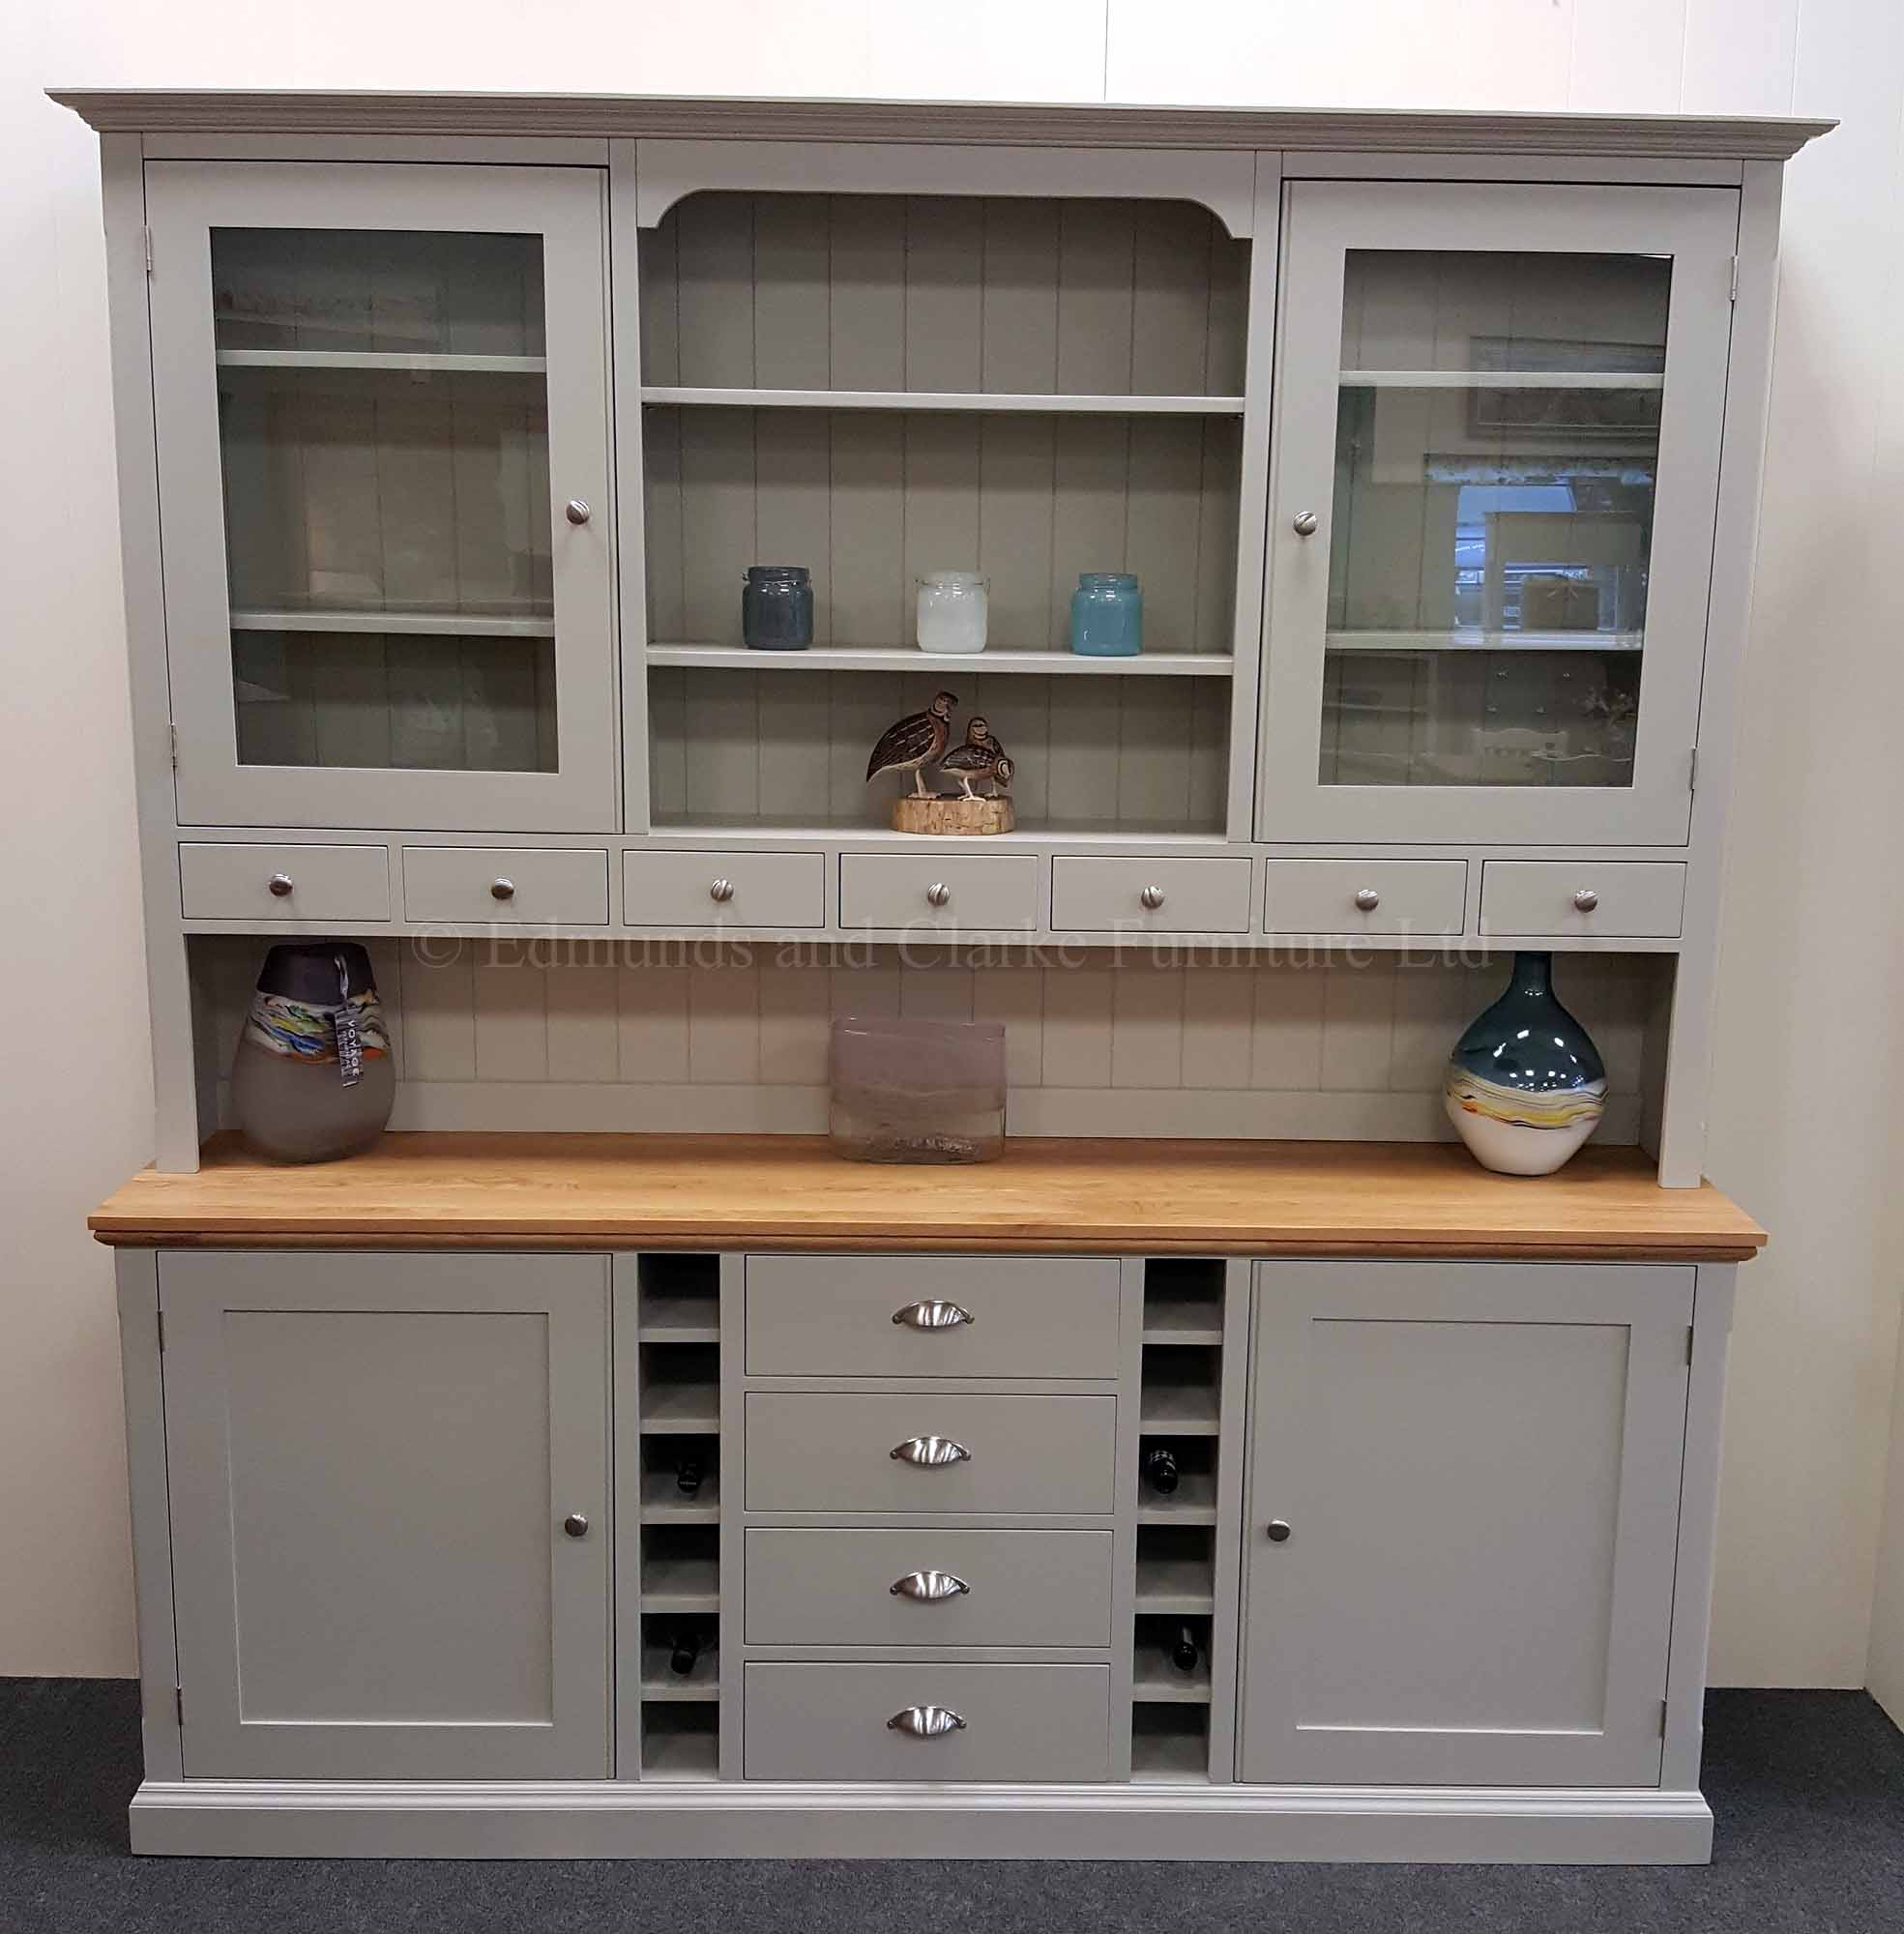 Edmunds Painted 7ft Tall Dresser With Wine Racks. Oak sideboard top and painted shelves